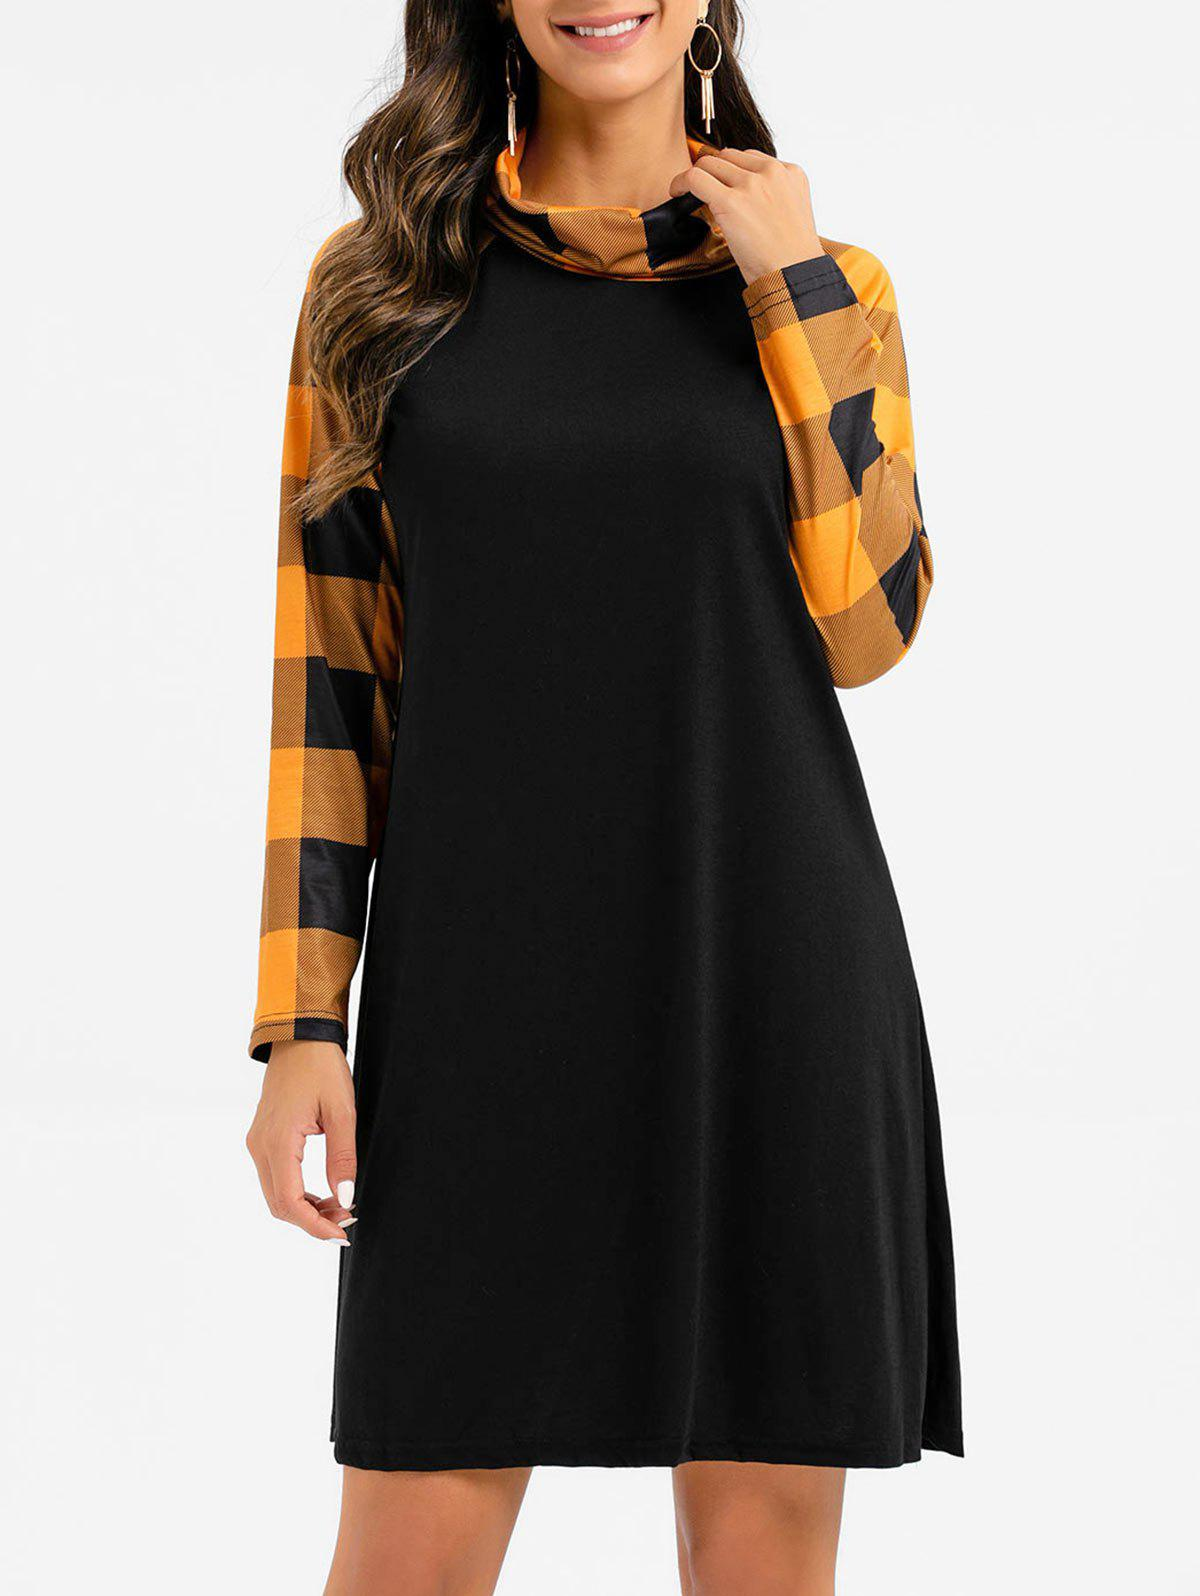 Plaid Turtleneck Raglan Sleeve Dress - GOLDEN BROWN S